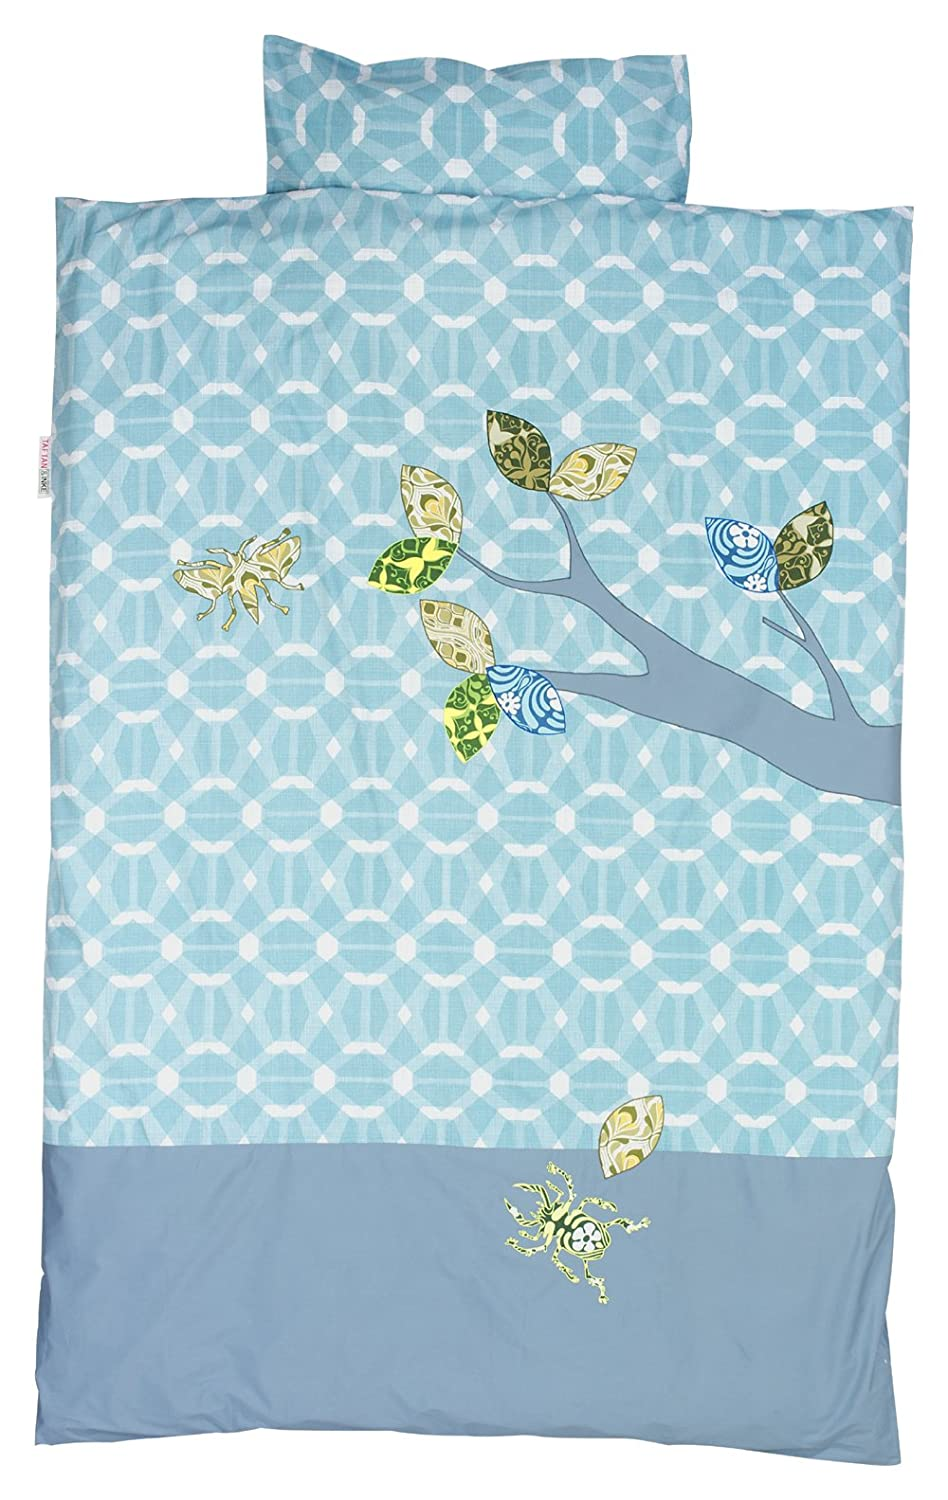 Taftan Inke and Taftan Duvet Cover Set 100 x 135cm for Cot (Blue Insects) DS-422